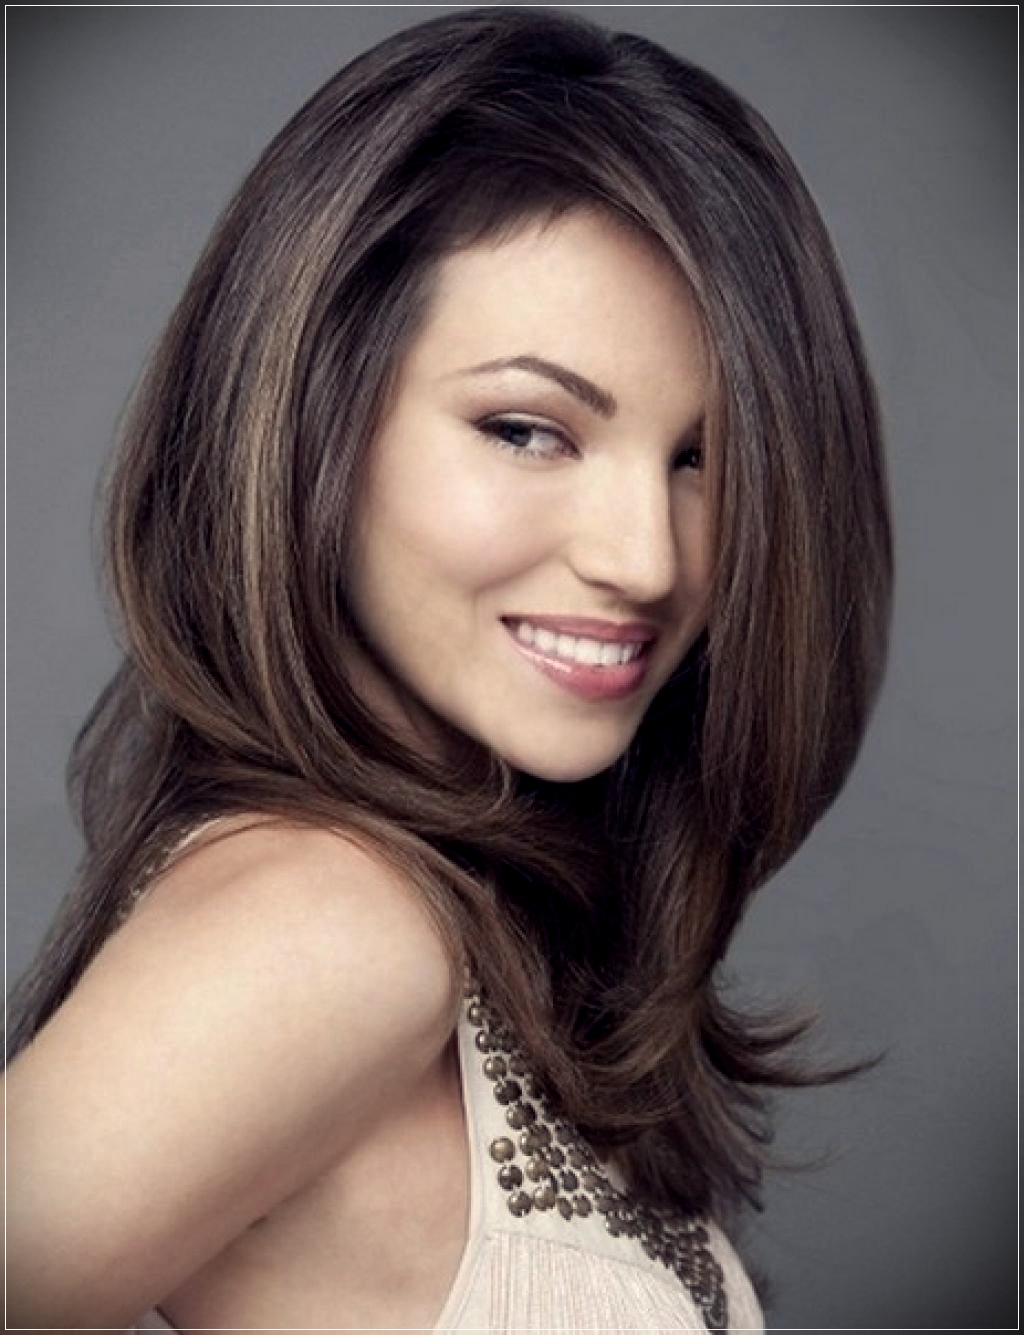 hairdos for mid length hair 3 - Different types of hairdos for mid length hair